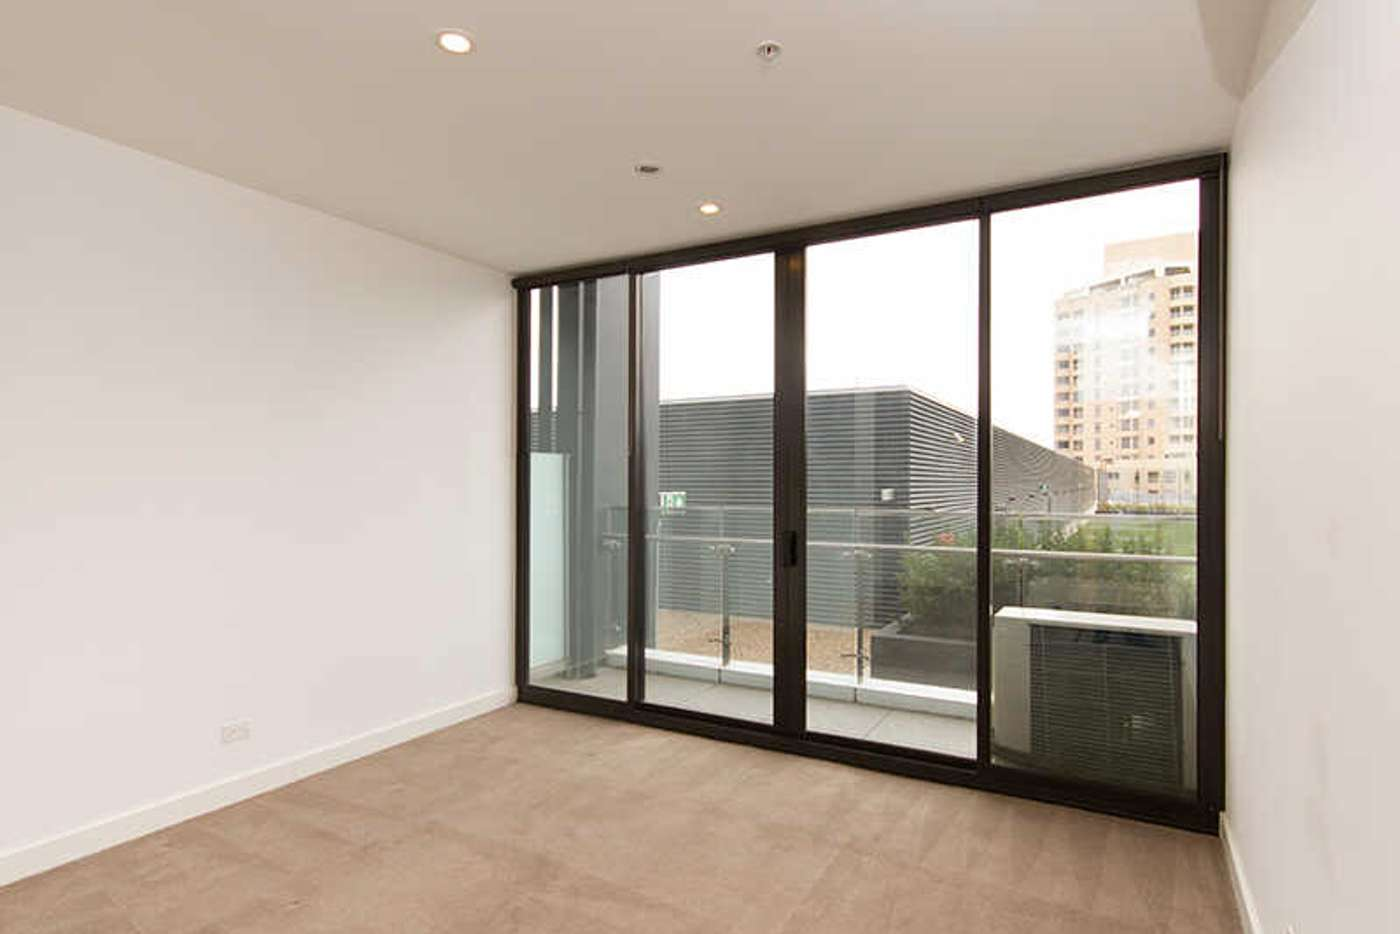 Main view of Homely apartment listing, 305/31 Malcolm Street, South Yarra VIC 3141